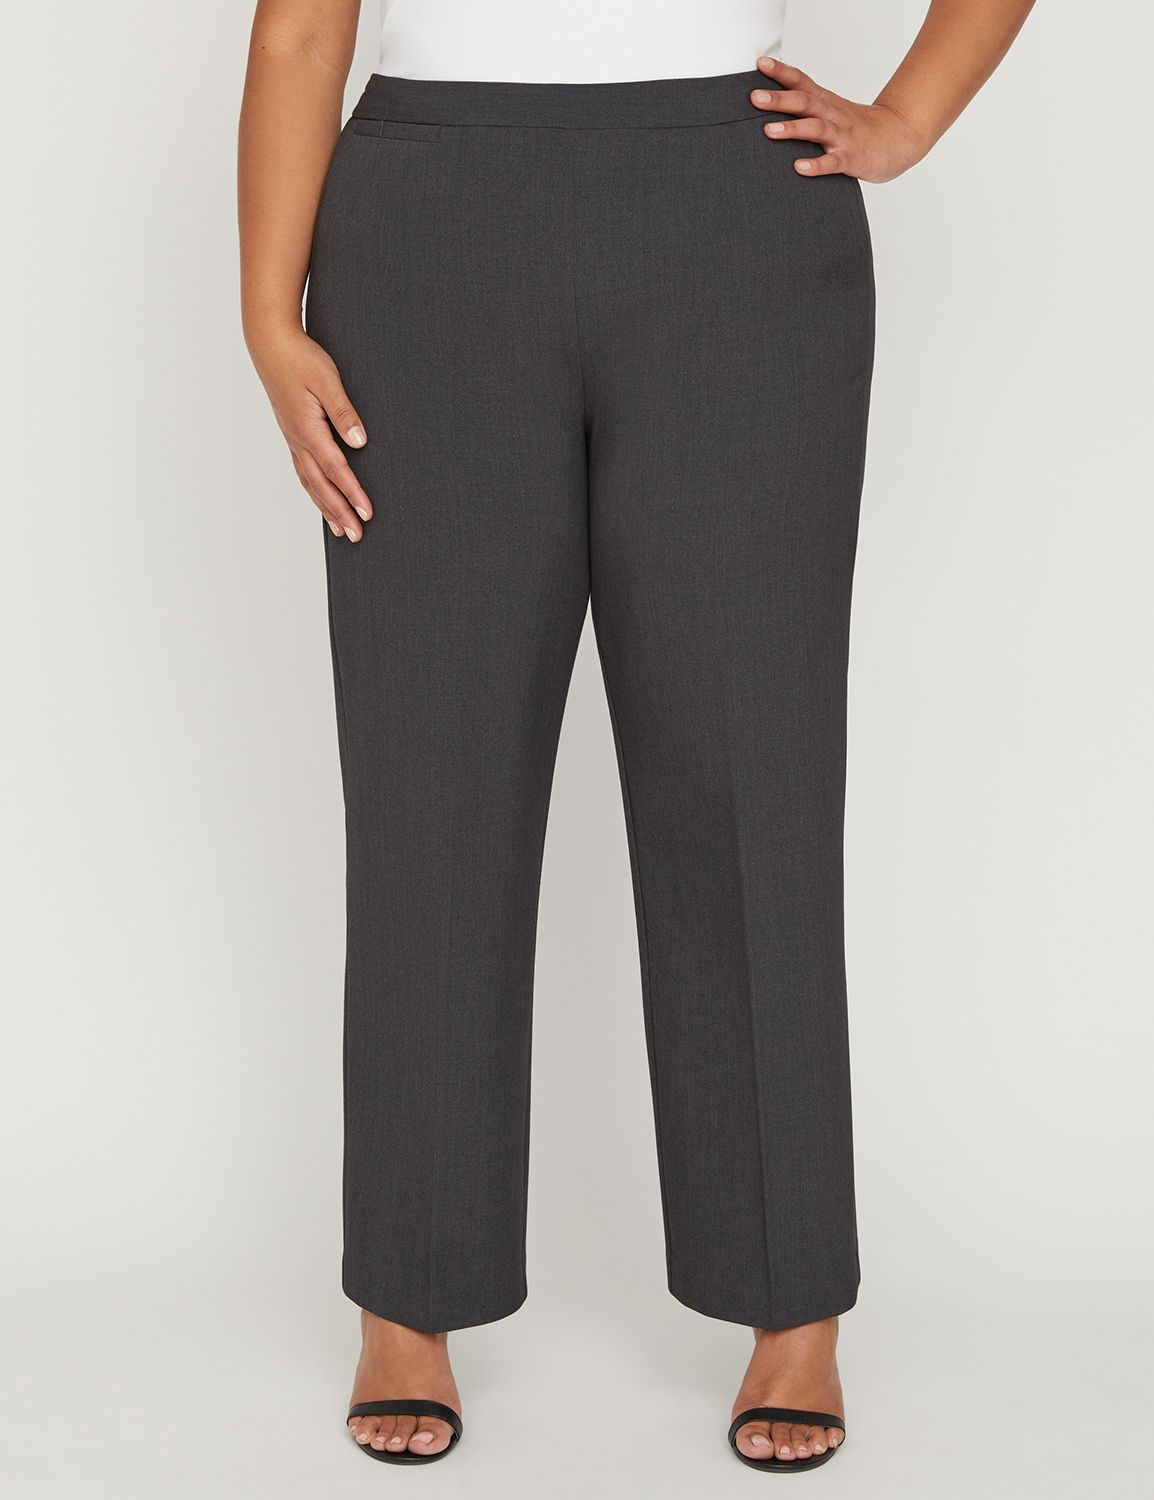 Heathered Refined Pant Heathered Refined Fit Pant MP-300044109